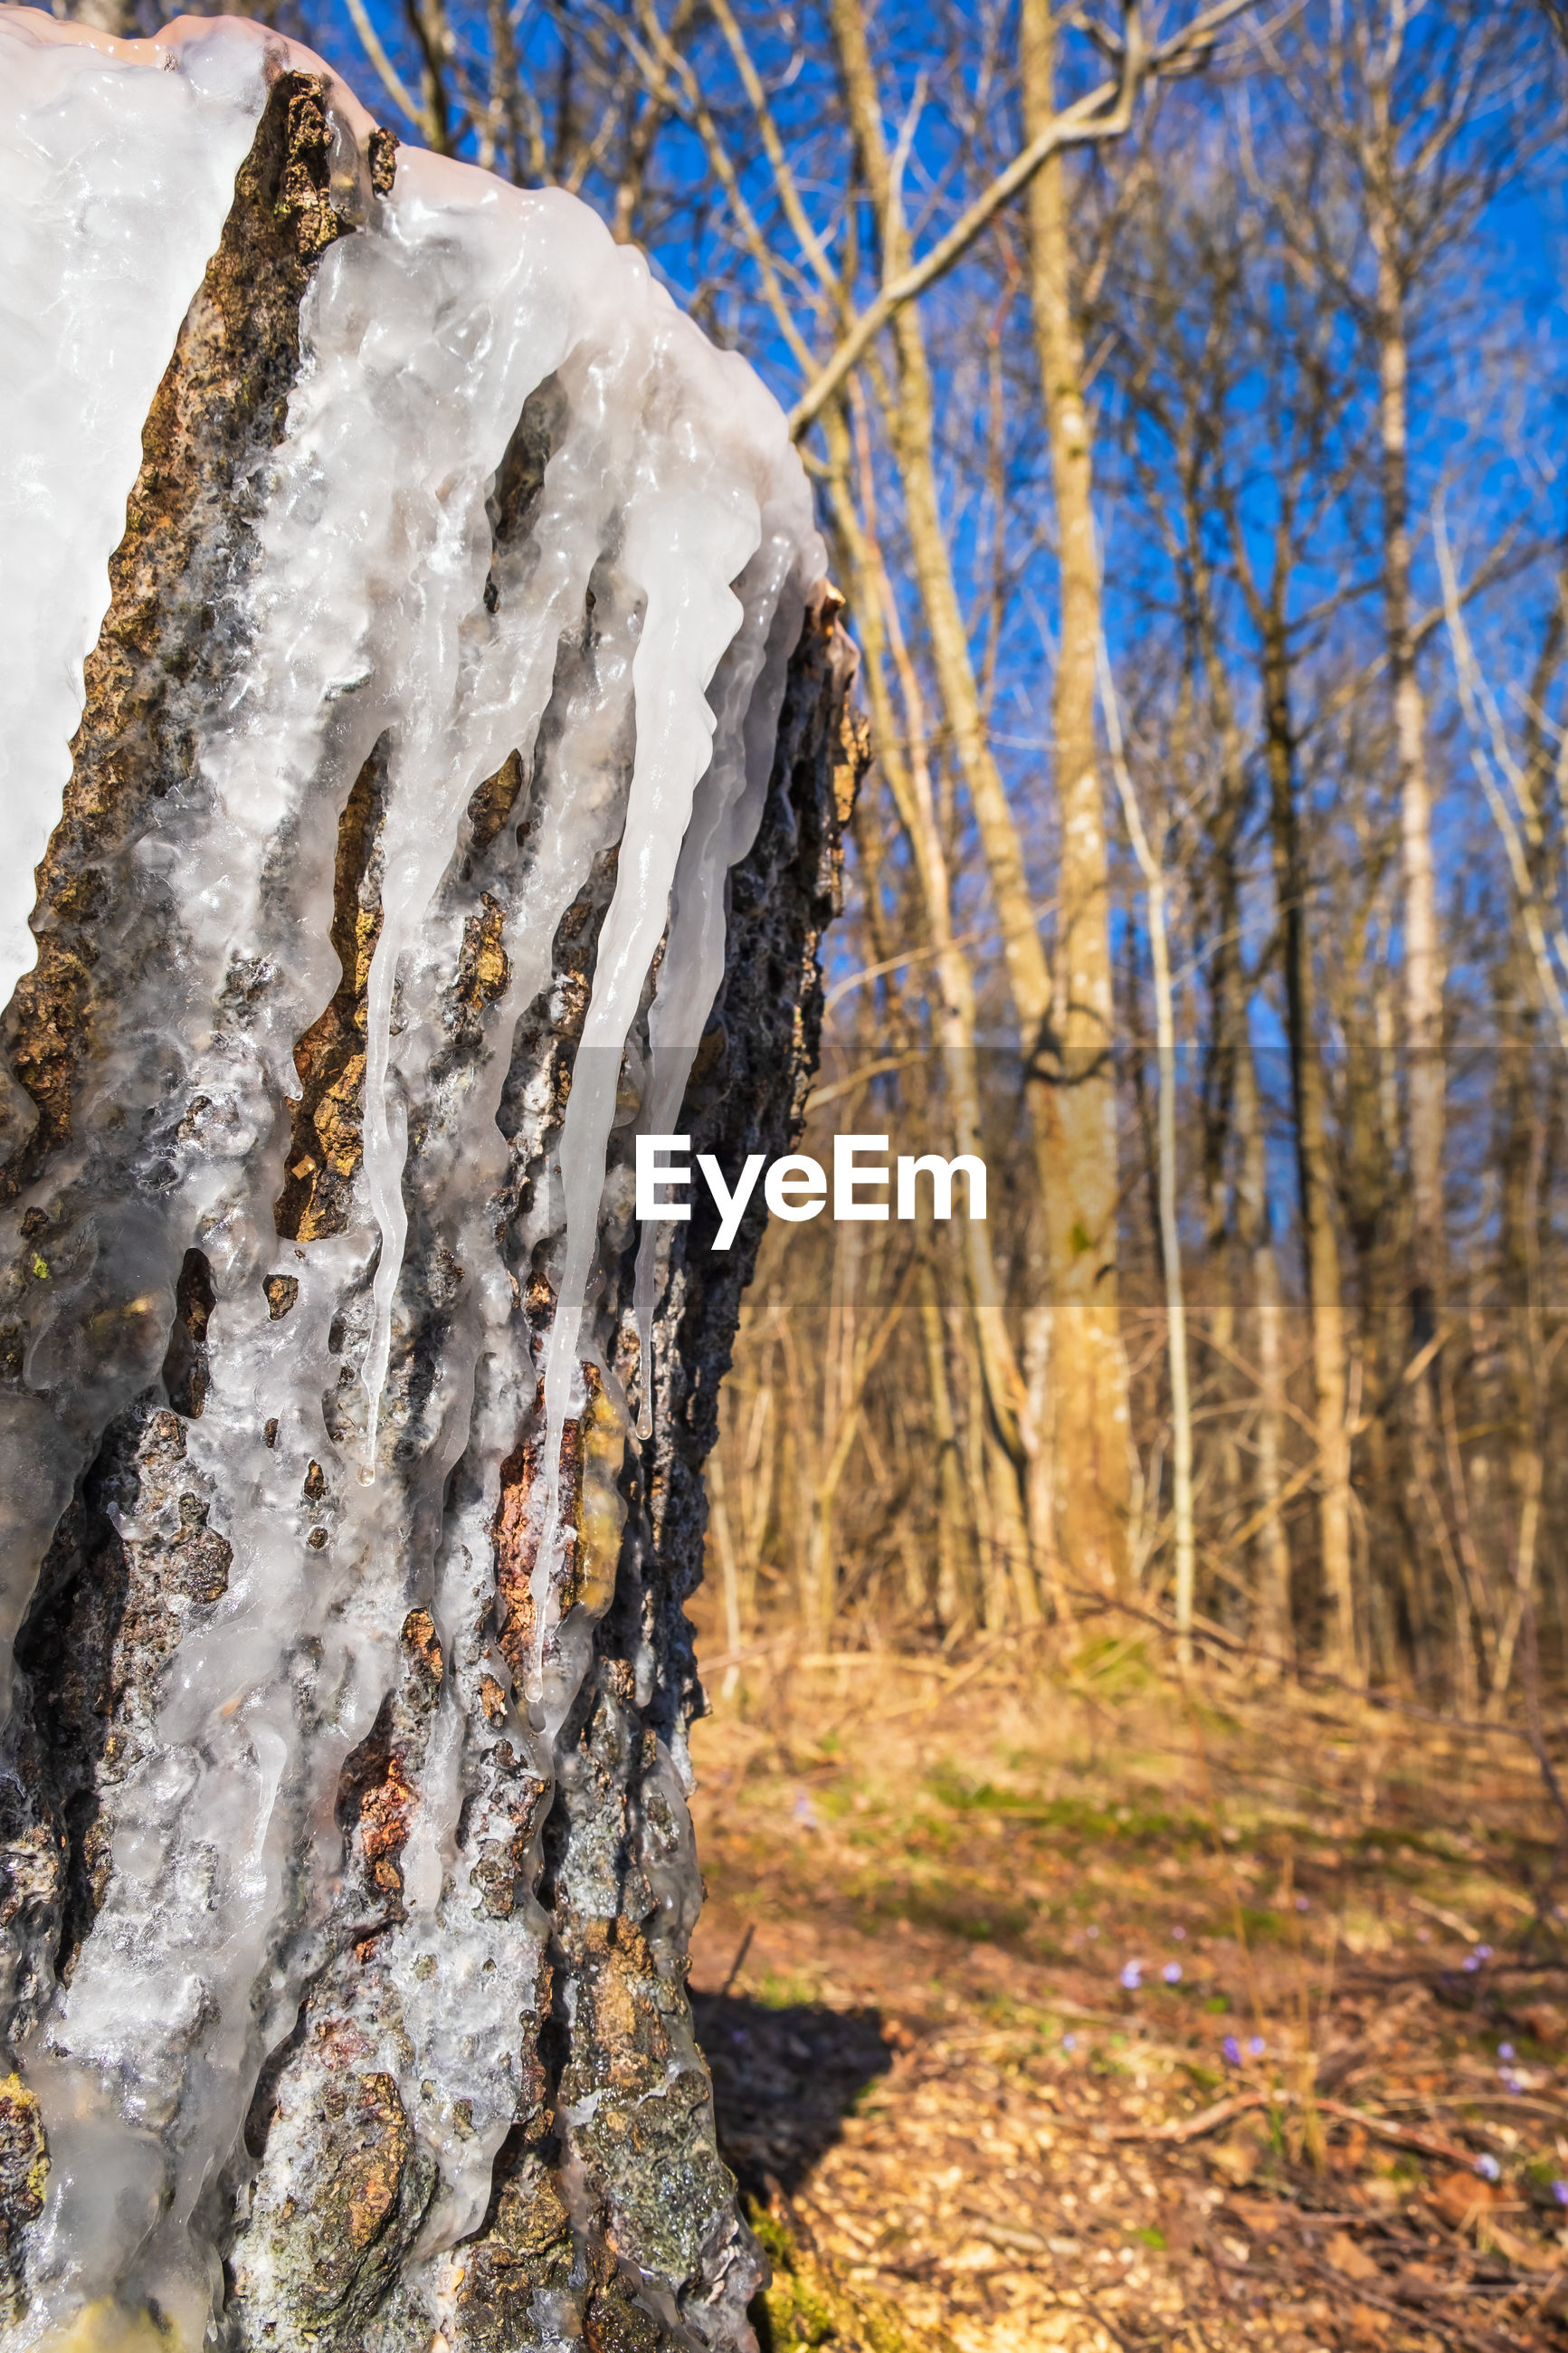 CLOSE-UP OF TREE TRUNK DURING WINTER